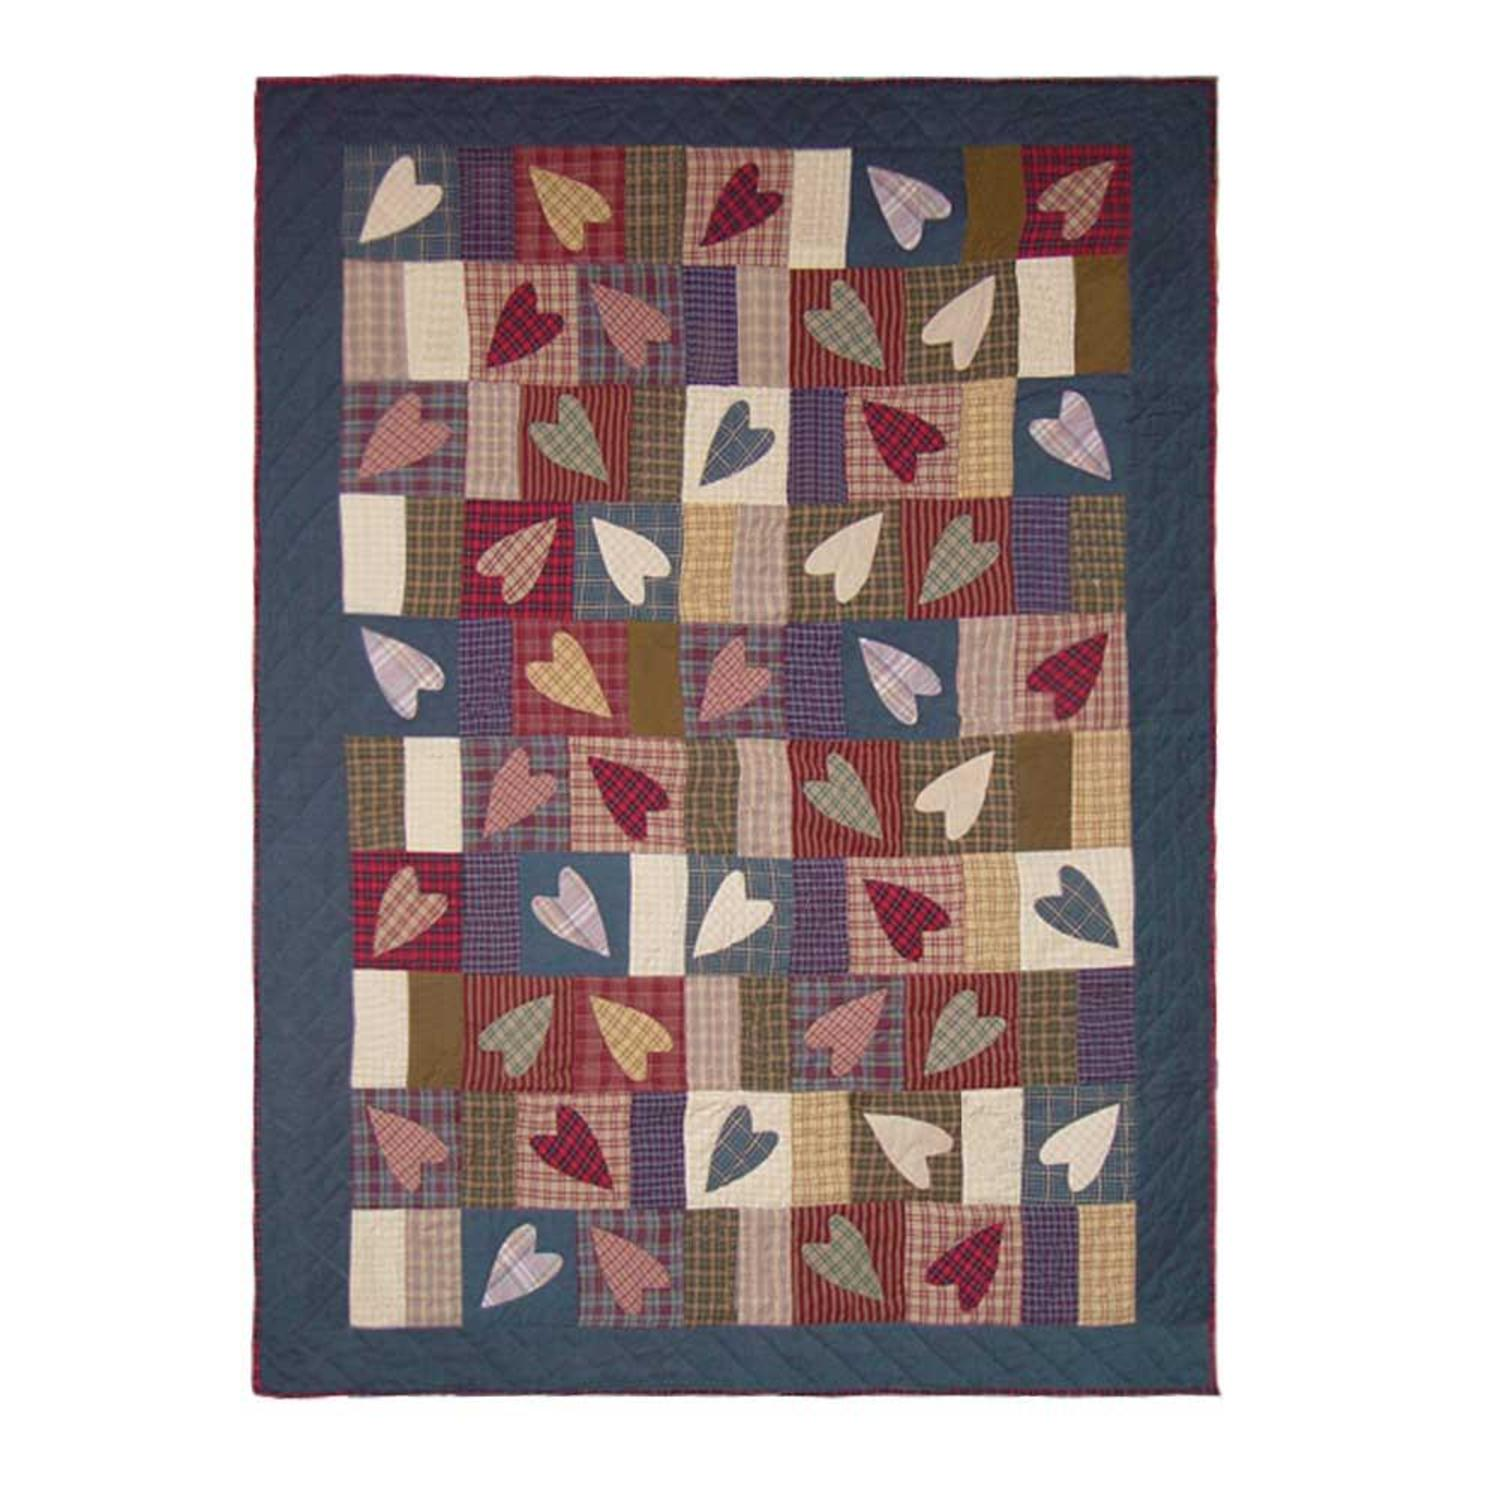 Primitive Hearts By Patchmagic Quilts Beddingsuperstore Com